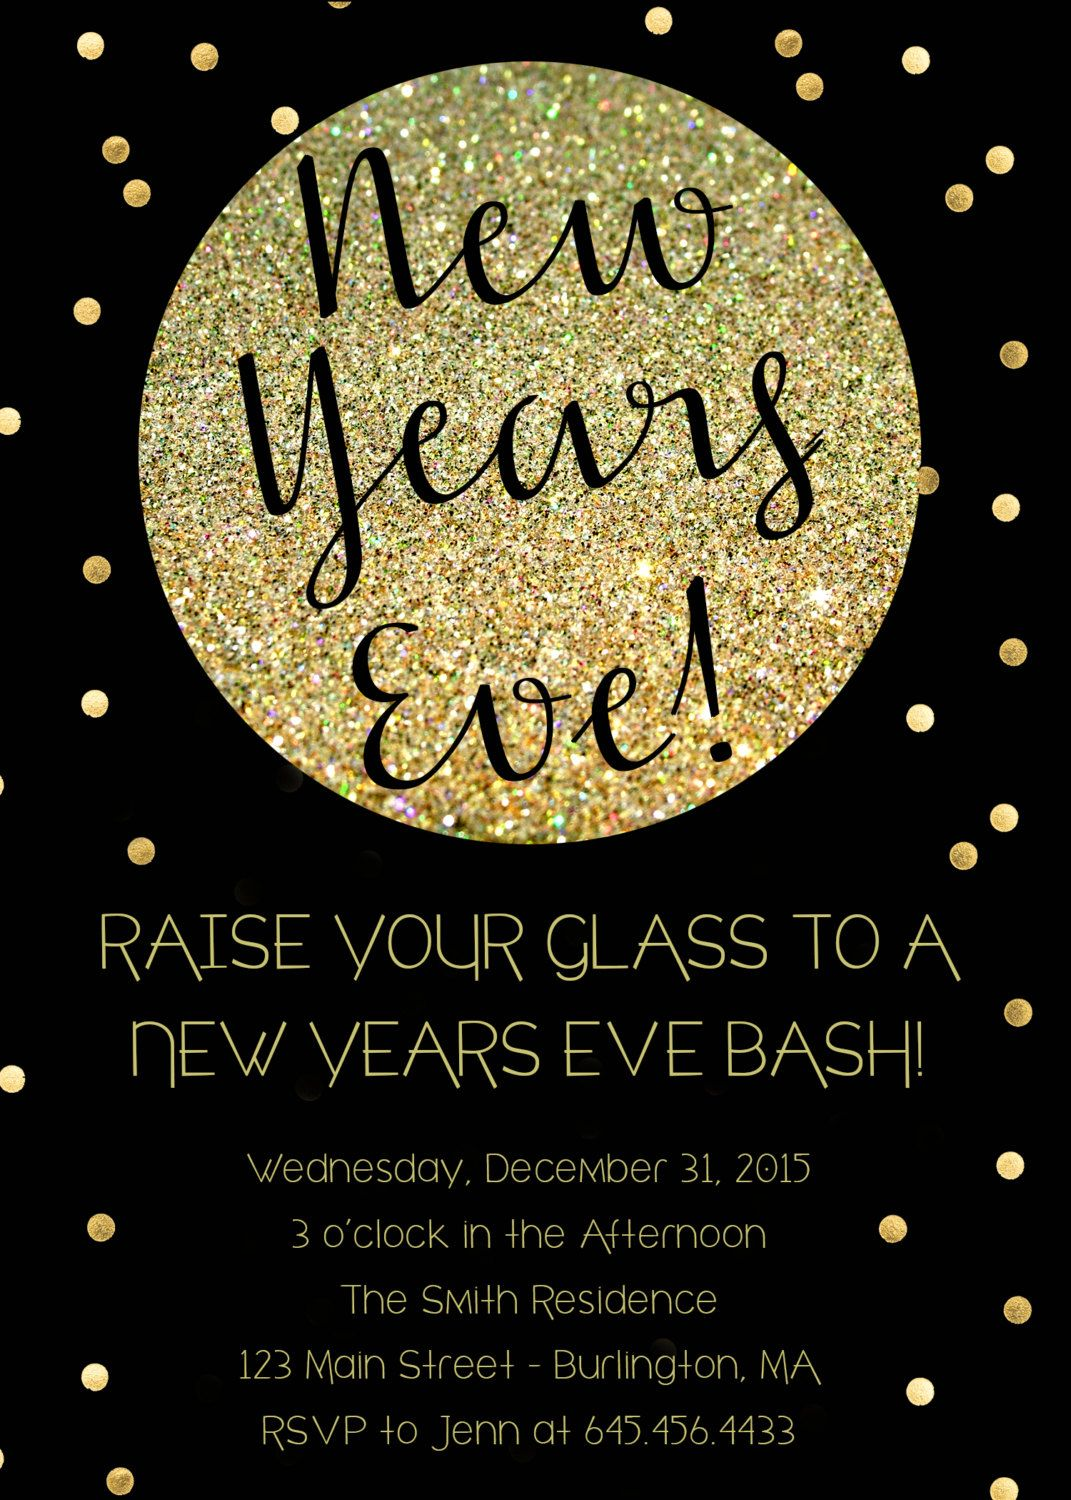 New Years Eve Party Invitation In Black And Gold Glitter Etsy New Years Eve New Years Eve Party New Years Eve Invitations